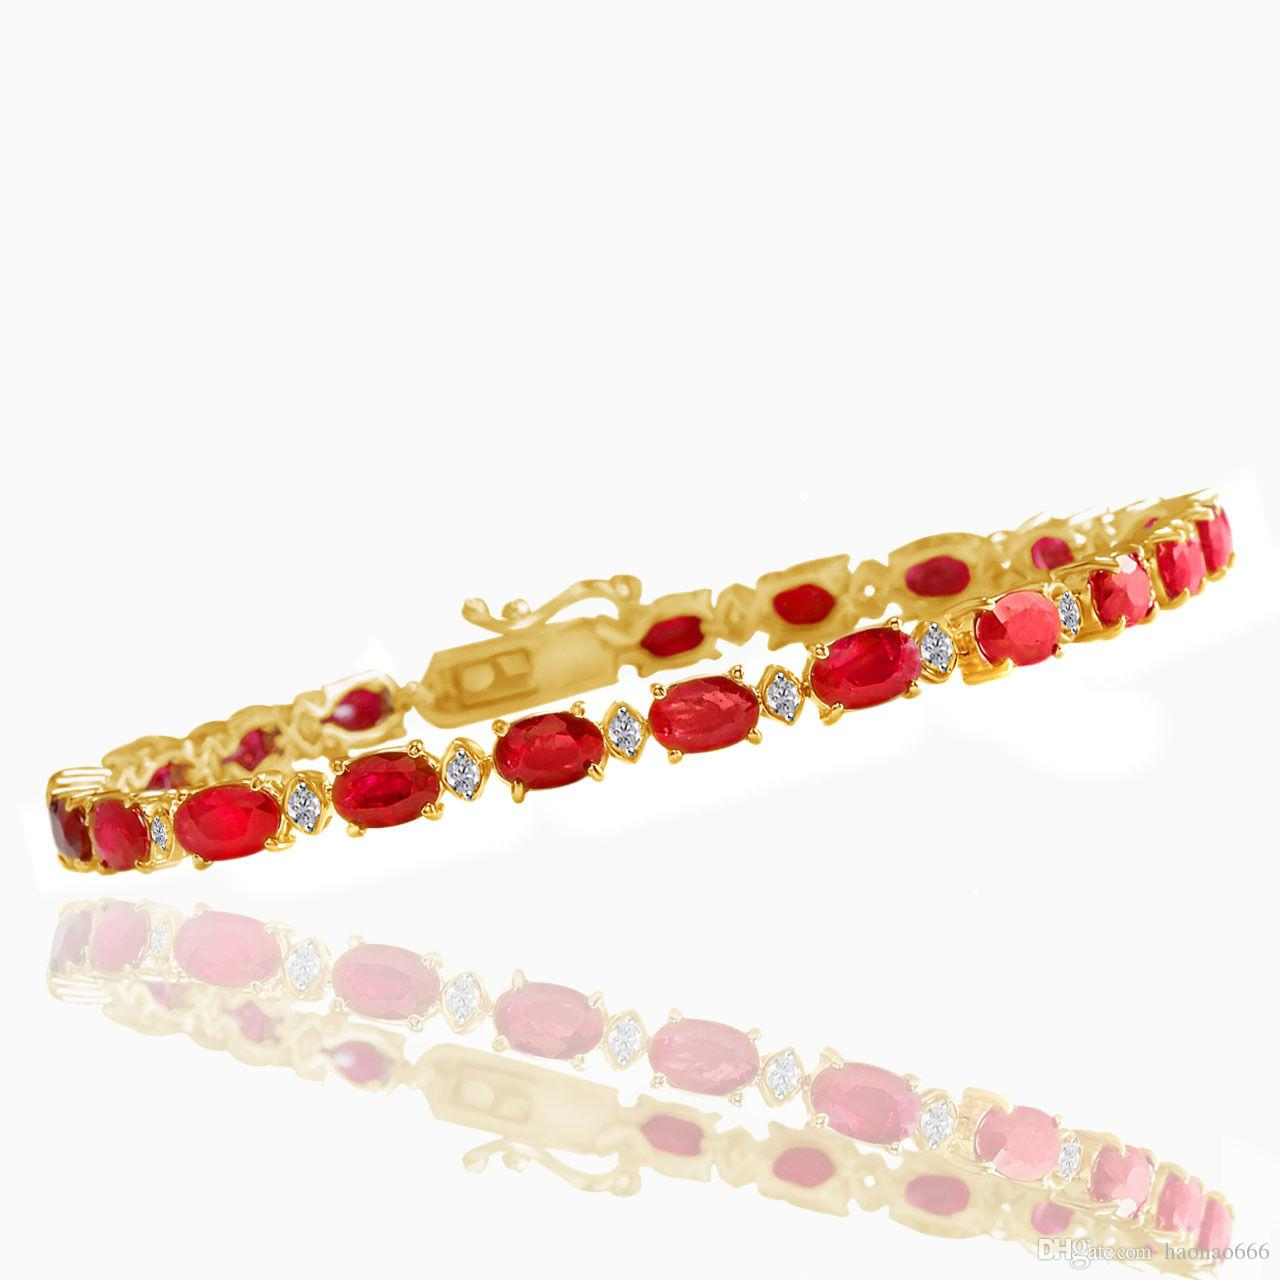 inch yellow carats jewelry red from heart ideal gold women gift ice set diamond bracelet gifts gemstone ruby infinity ip fine composite for